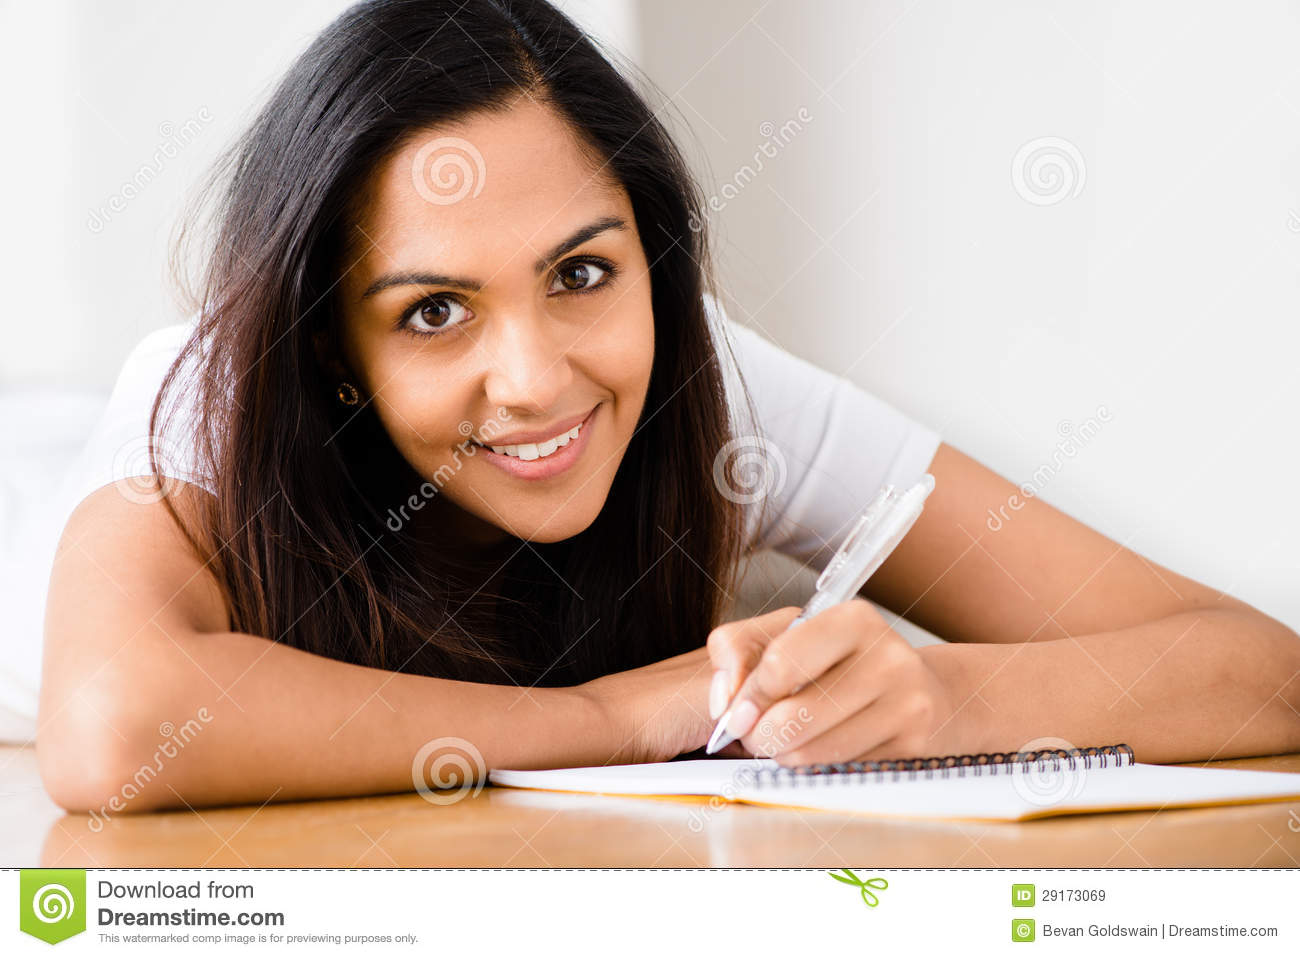 manging time as an adult learner essay View this essay on managing time as an adult learner in in several occasion different individuals wonder on the way they will manage to fit everything they.